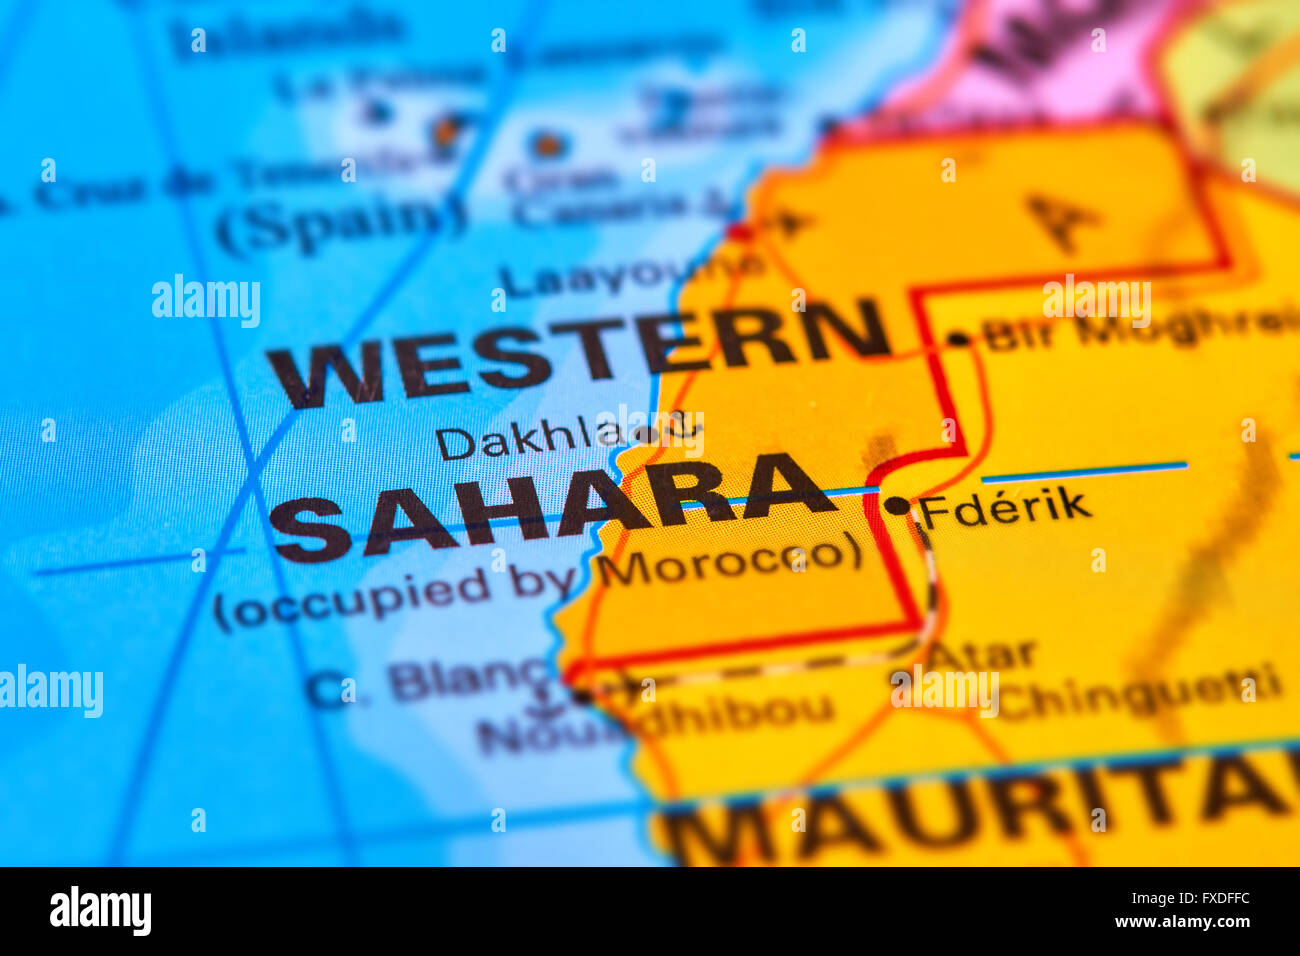 Western Sahara in Africa on the World Map - Stock Image